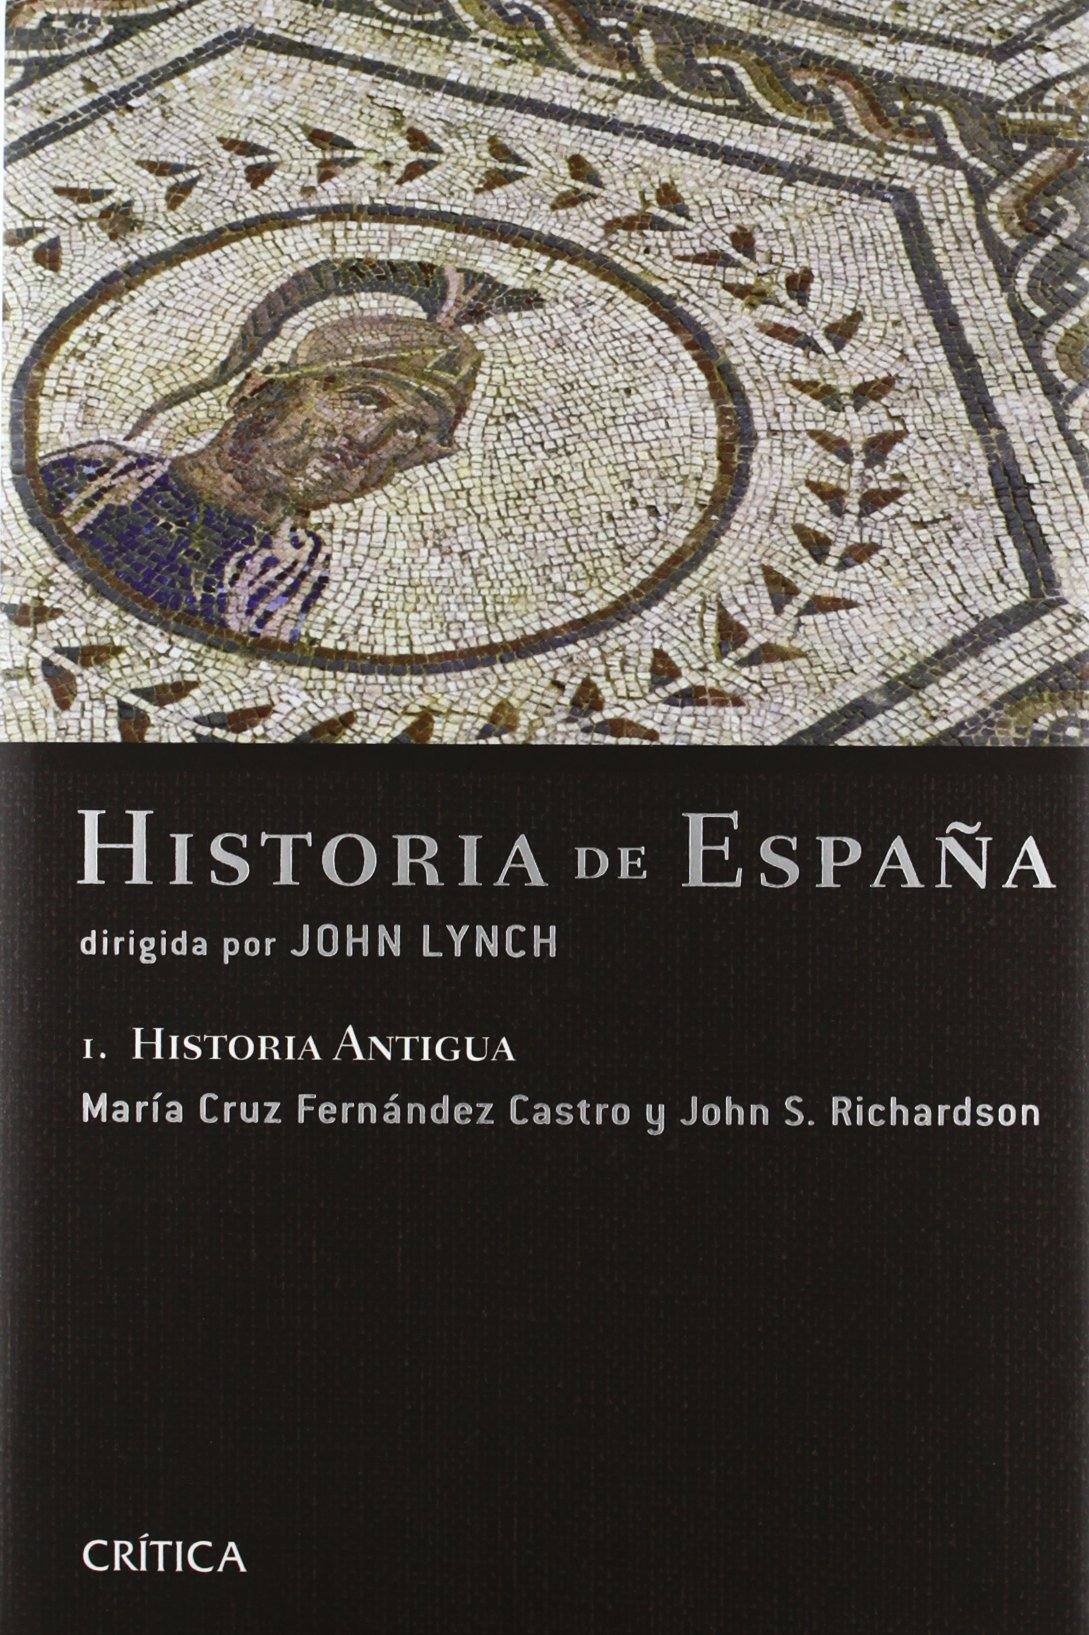 Historia Antigua: Historia de España, vol. 1 Serie Mayor: Amazon ...